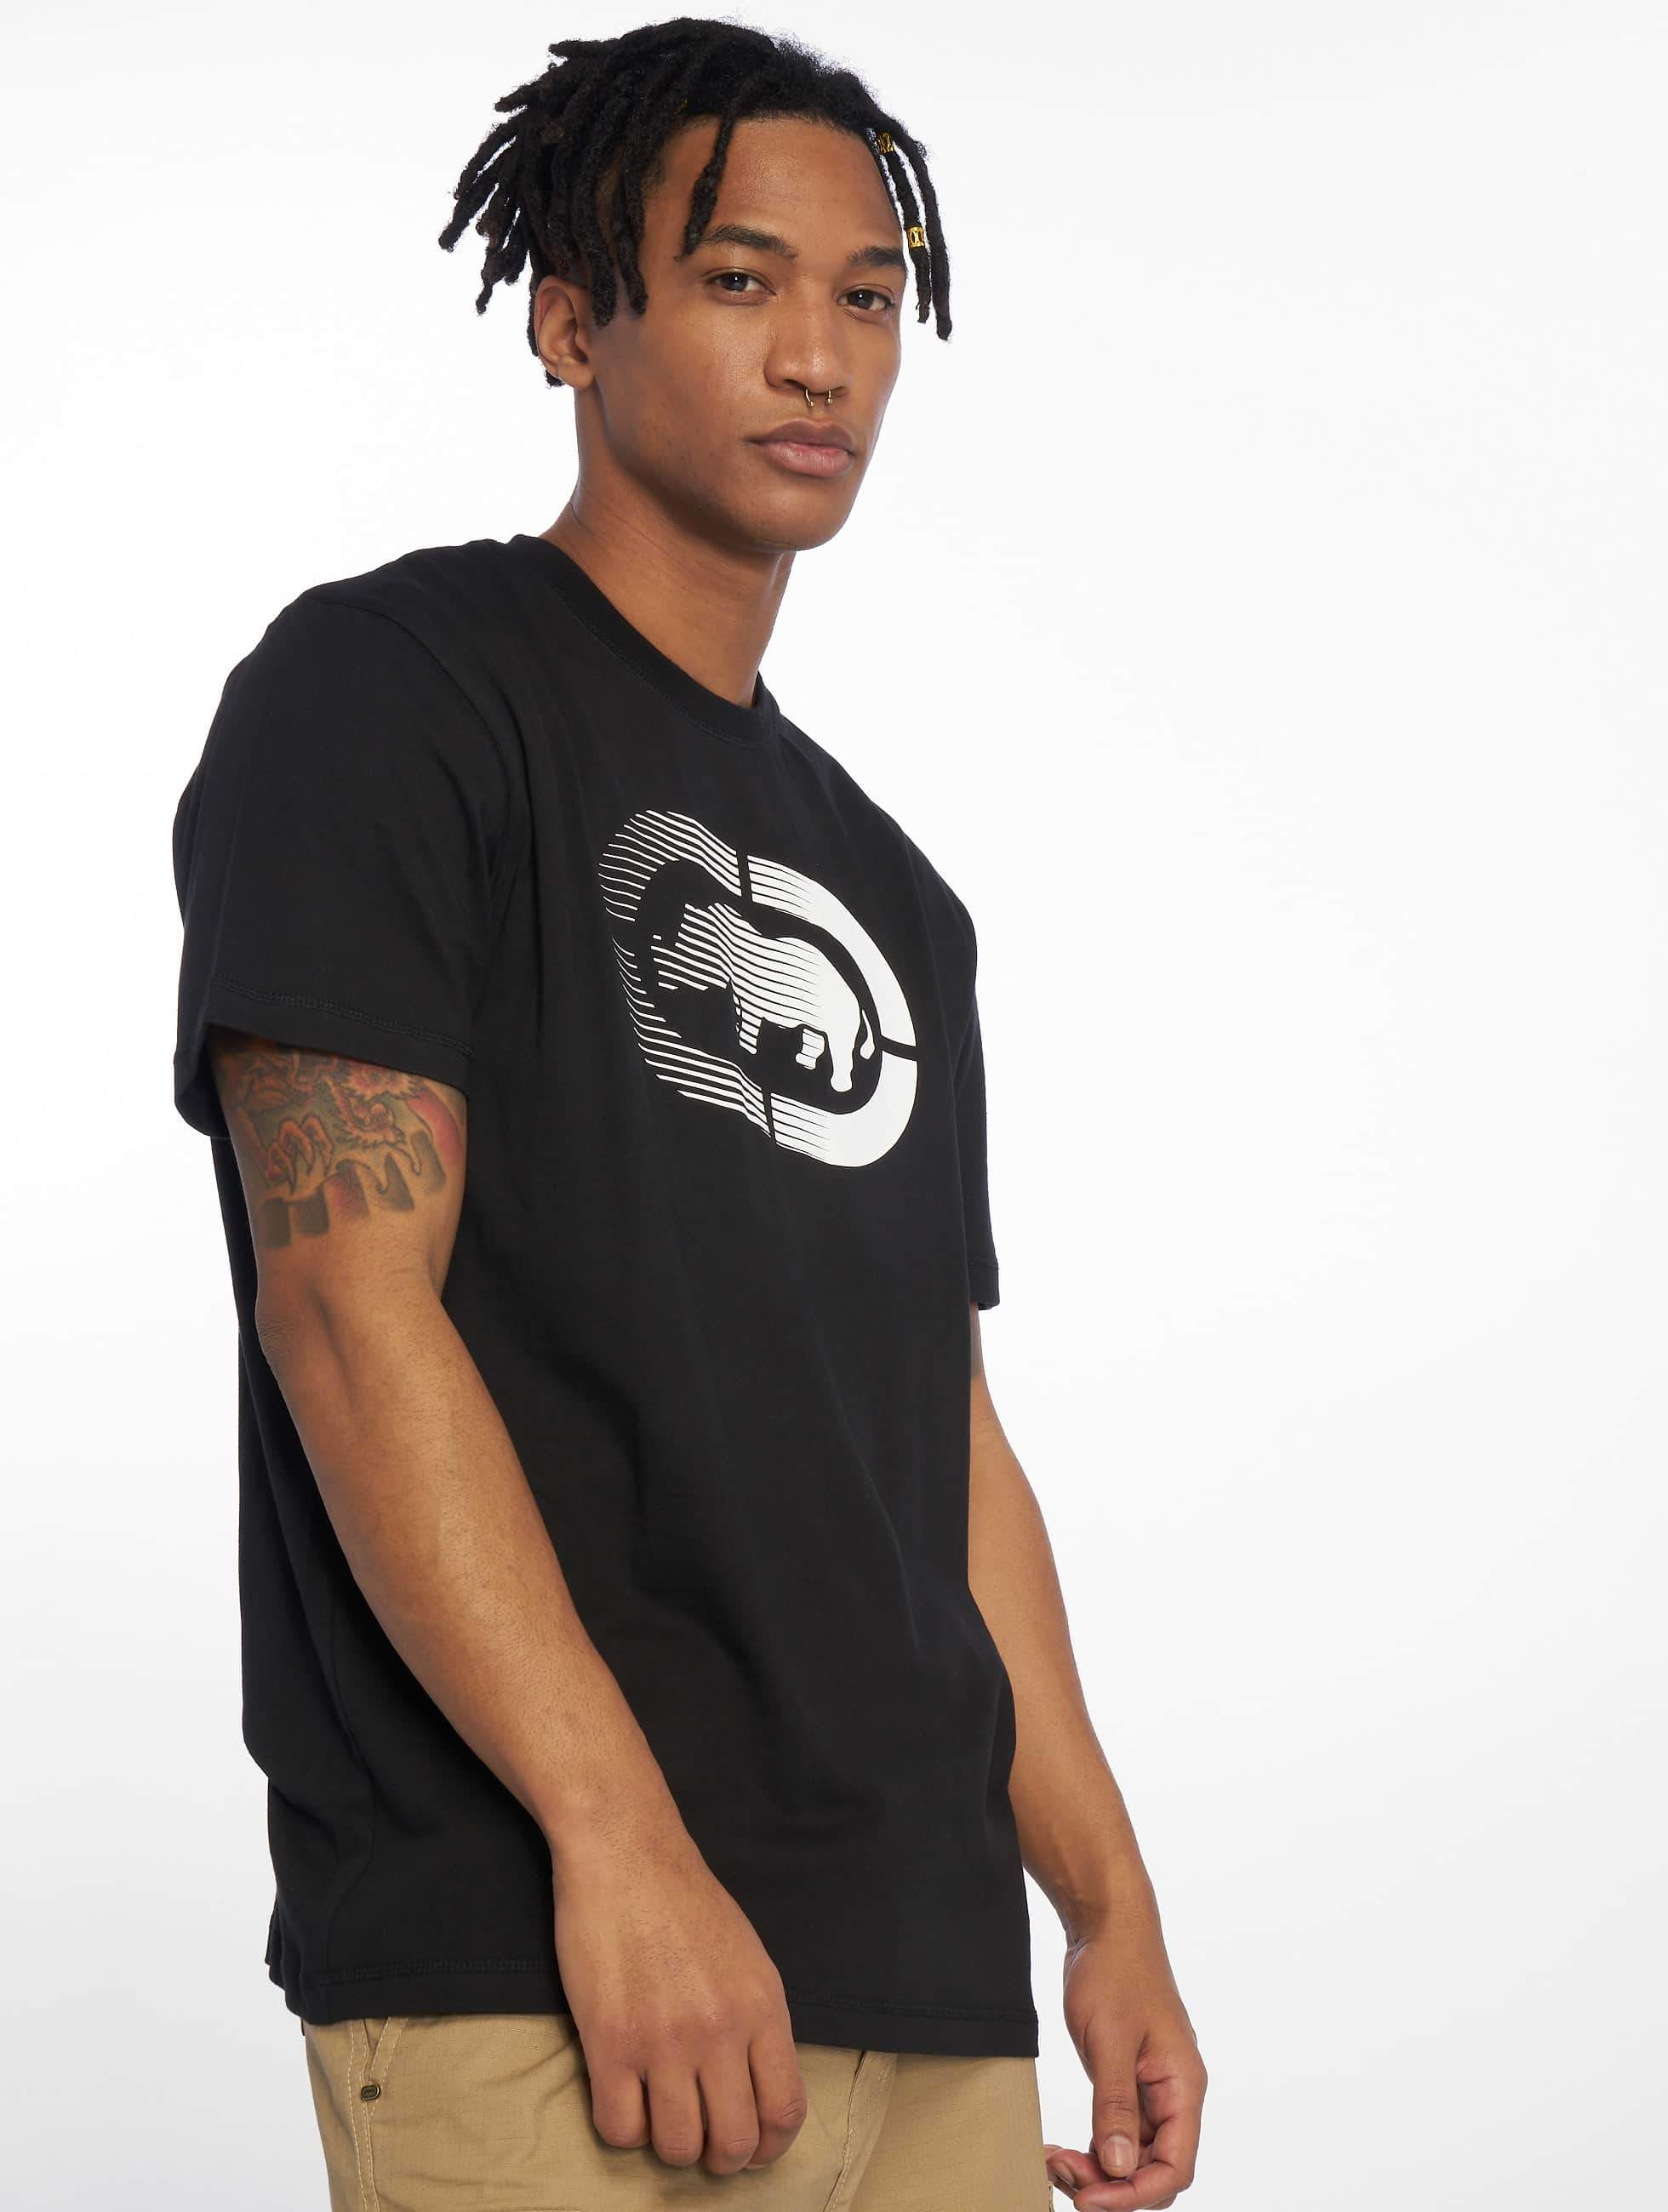 Ecko Unltd. / T-Shirt 5050 in black S